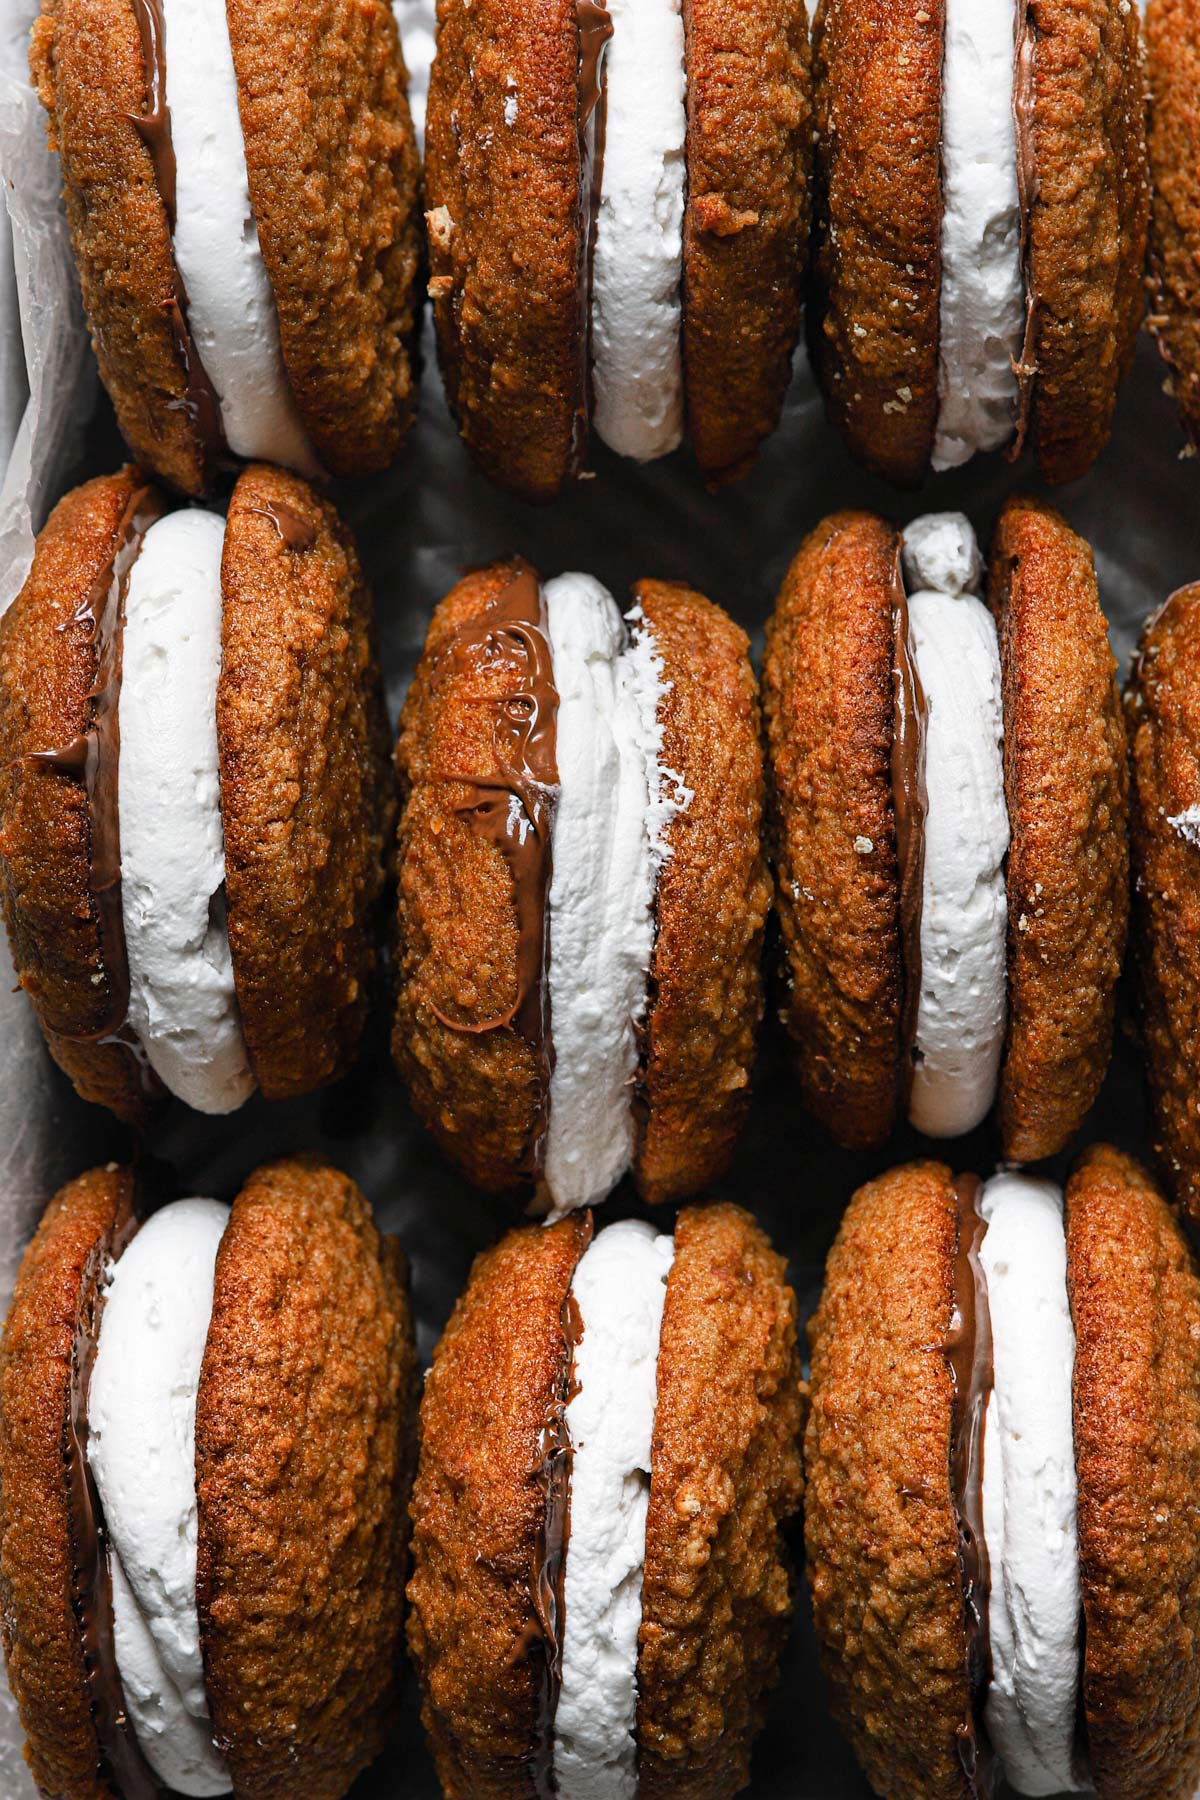 S'mores whoopie pies packed together standing on end with chocolate and marshmallow filling.